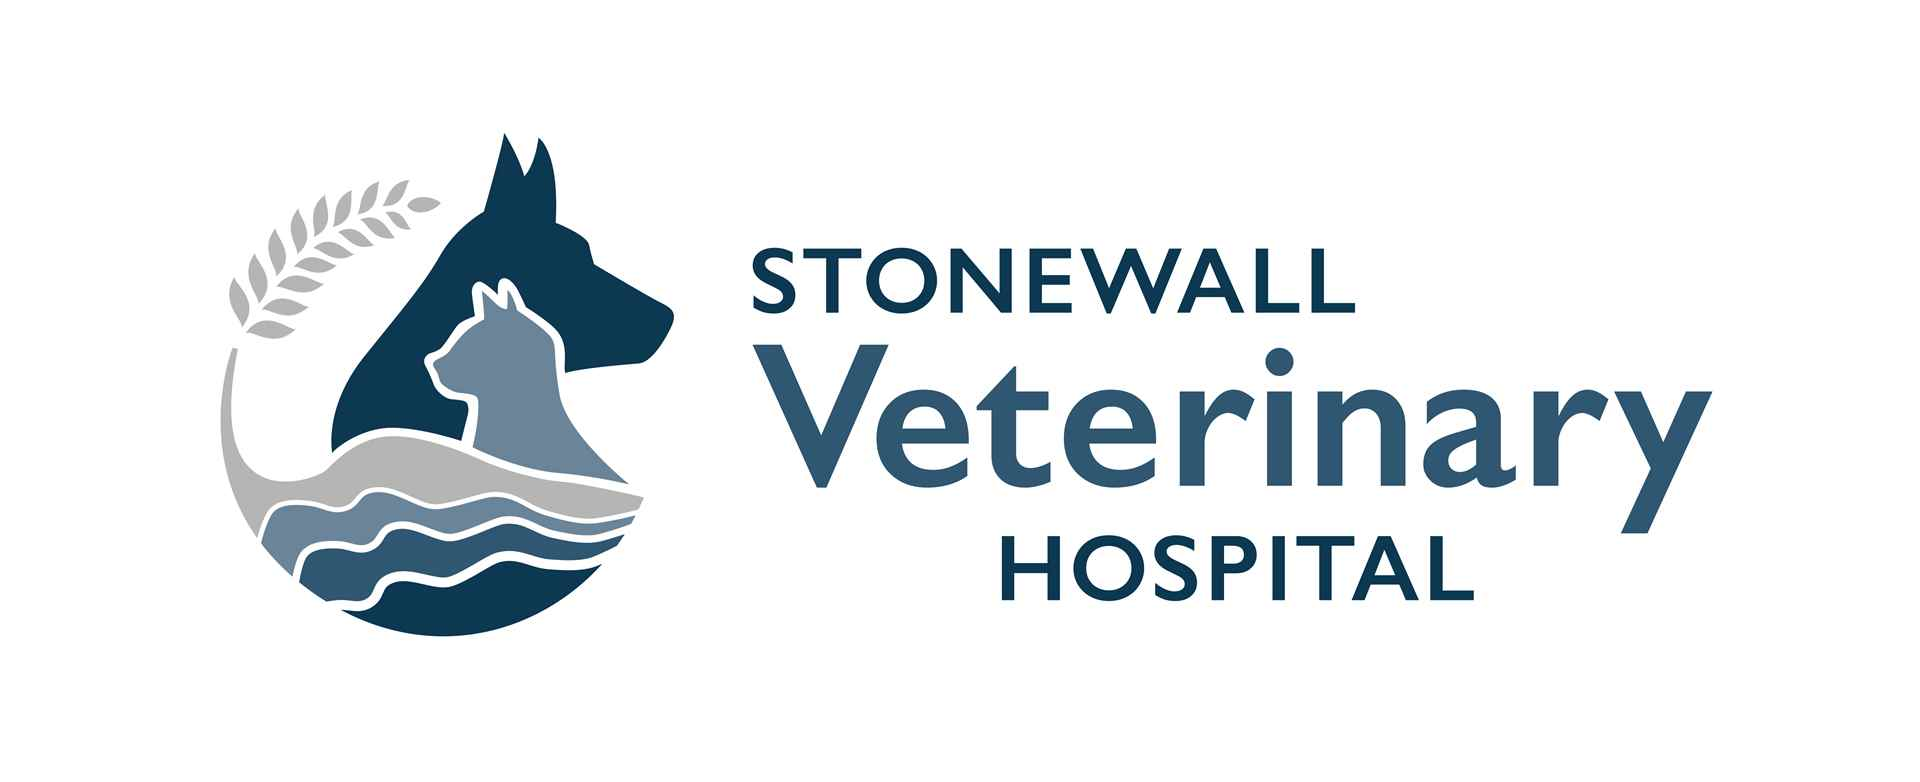 Stonewall Veterinary Hospital